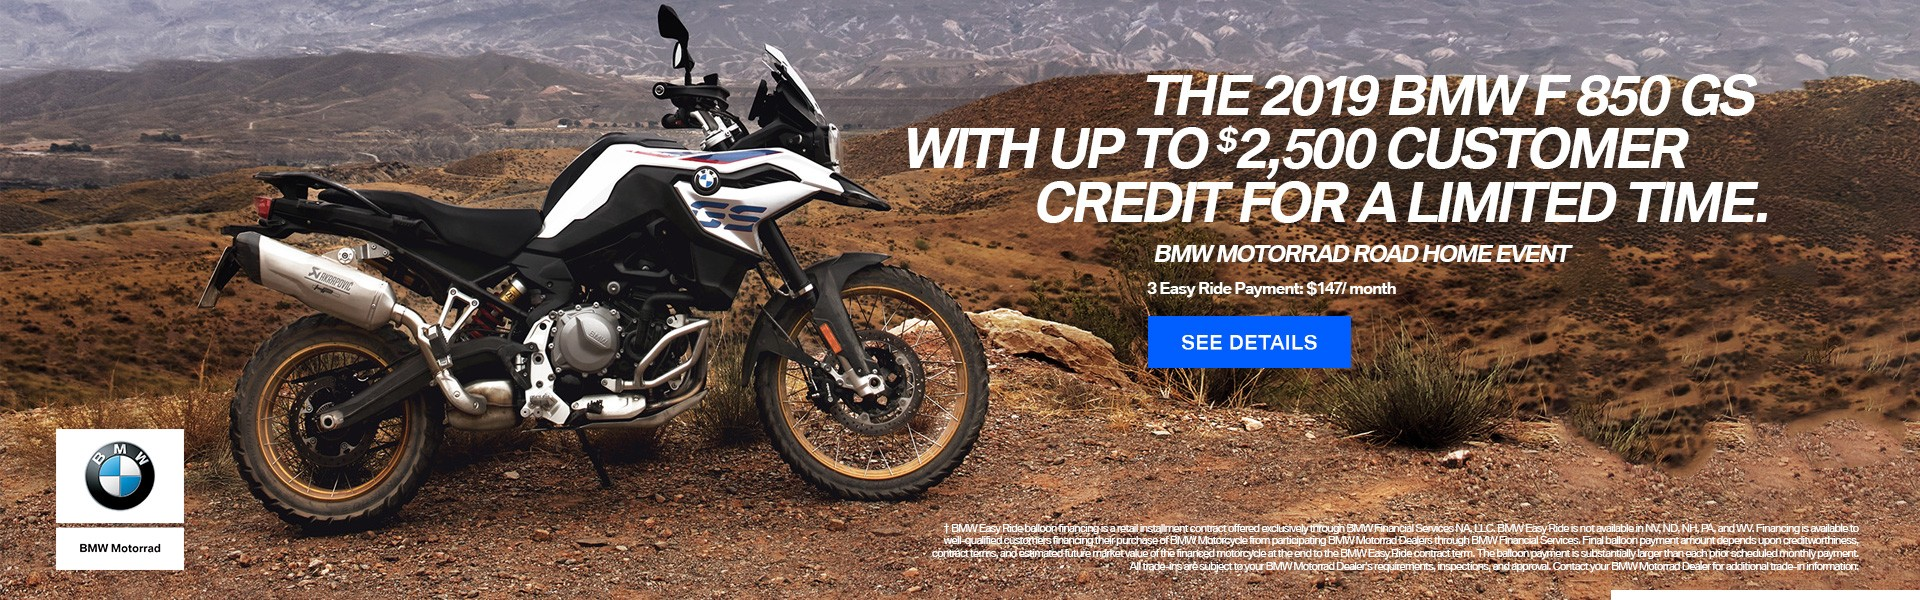 The 2019 BMW F 850 GS with up to $2500 Customer Credit for a limited time.